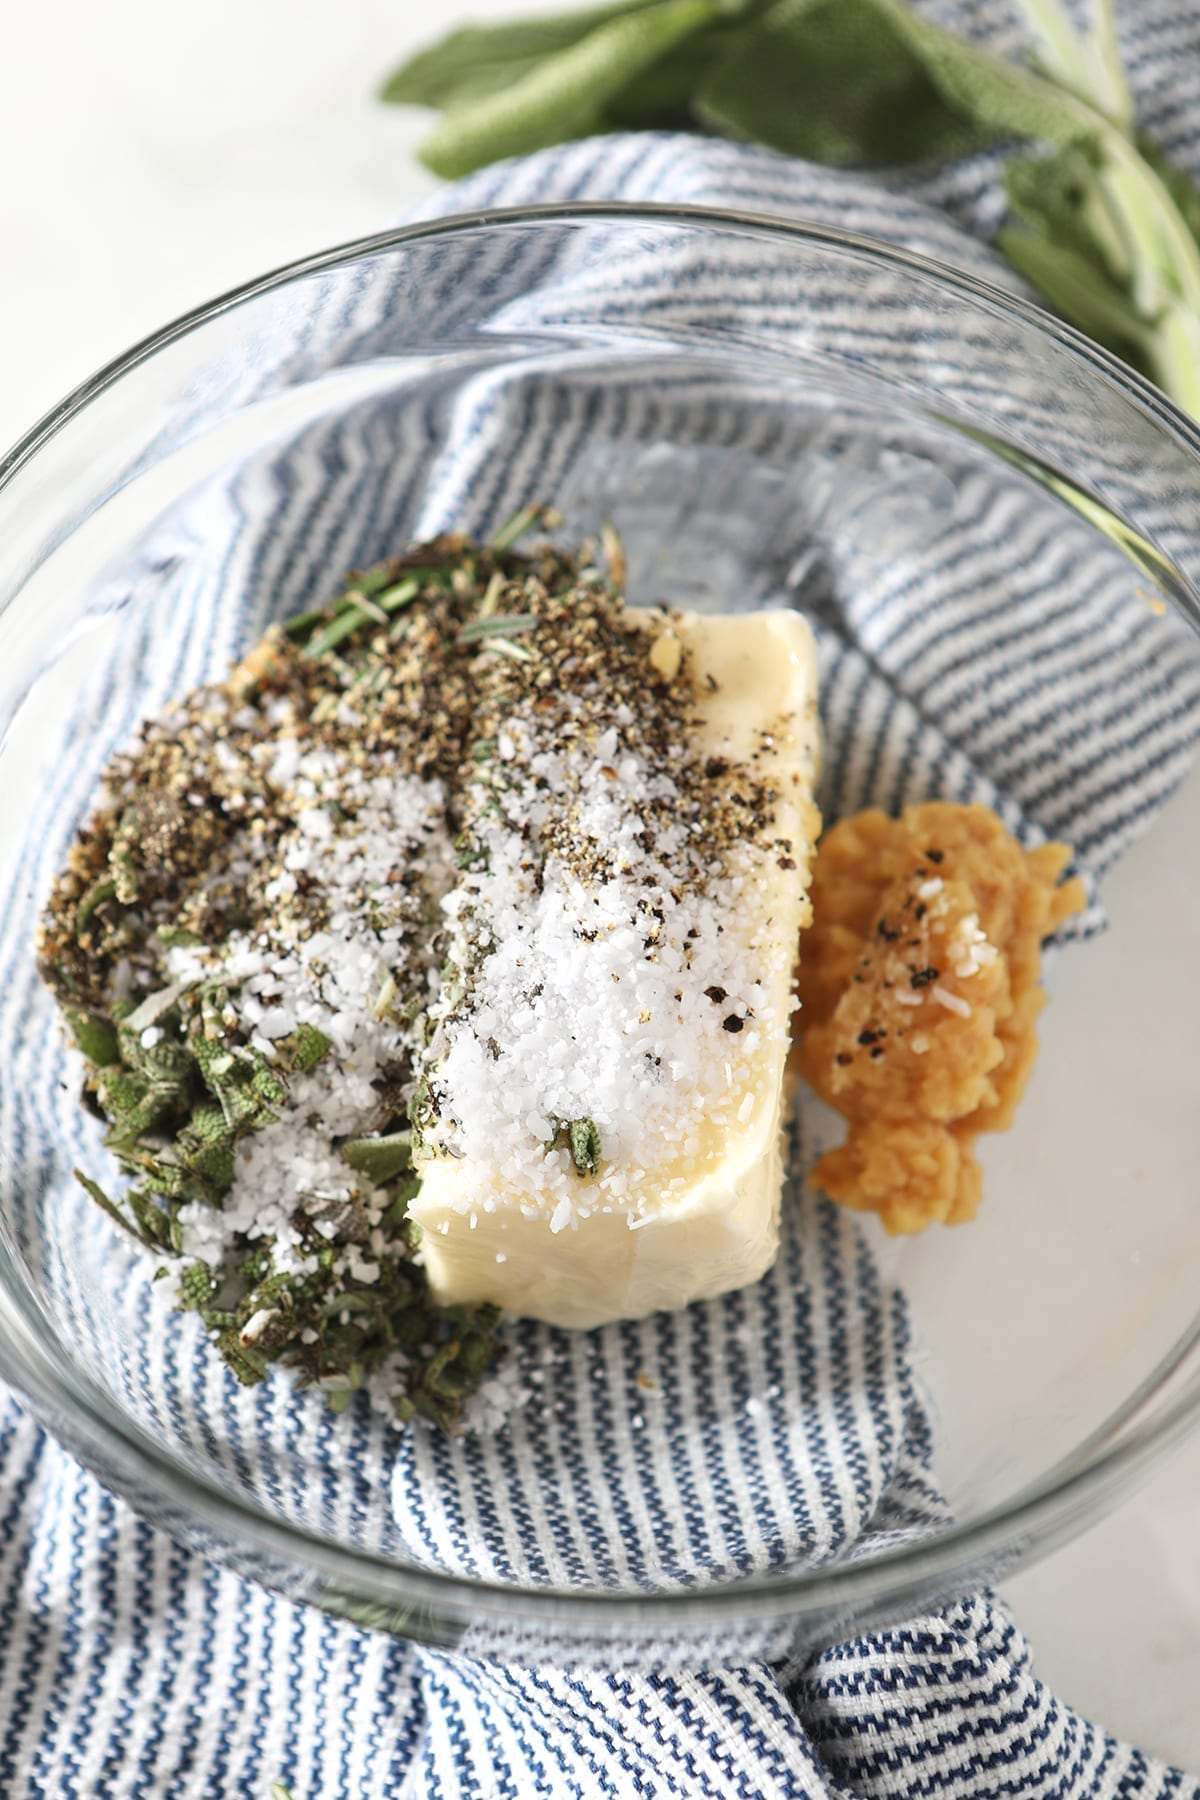 Herb butter ingredients in a glass bowl sitting on a blue striped towel before blending